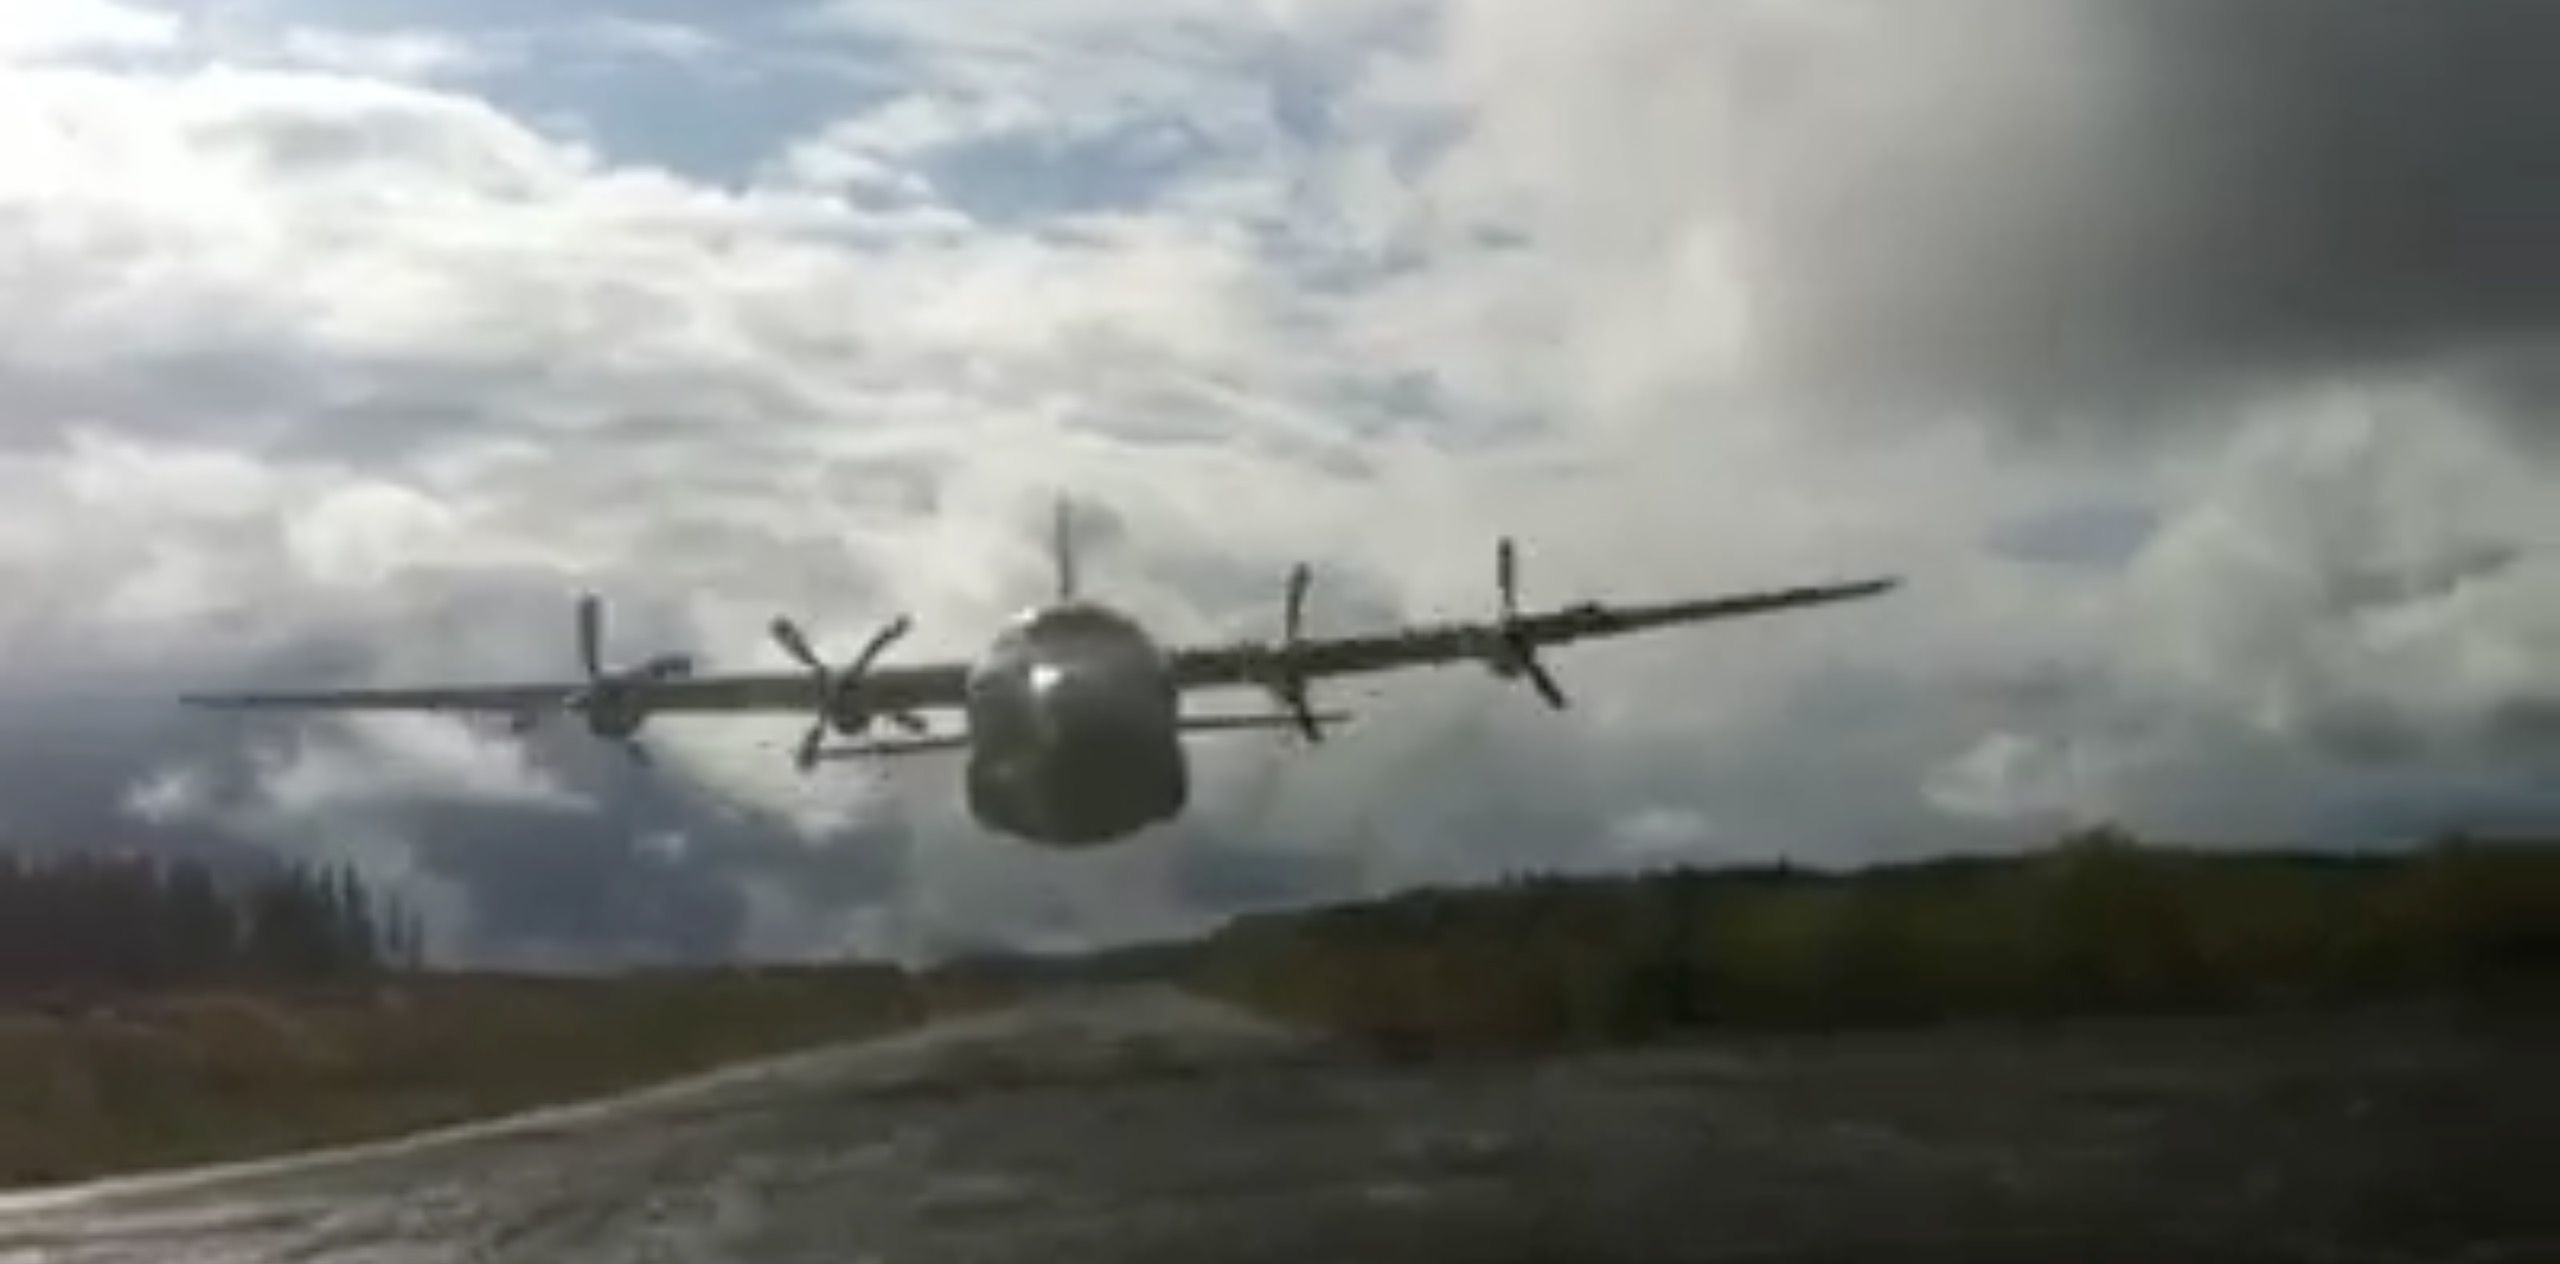 Watch a Photographer Nearly Get a Haircut from a C-130